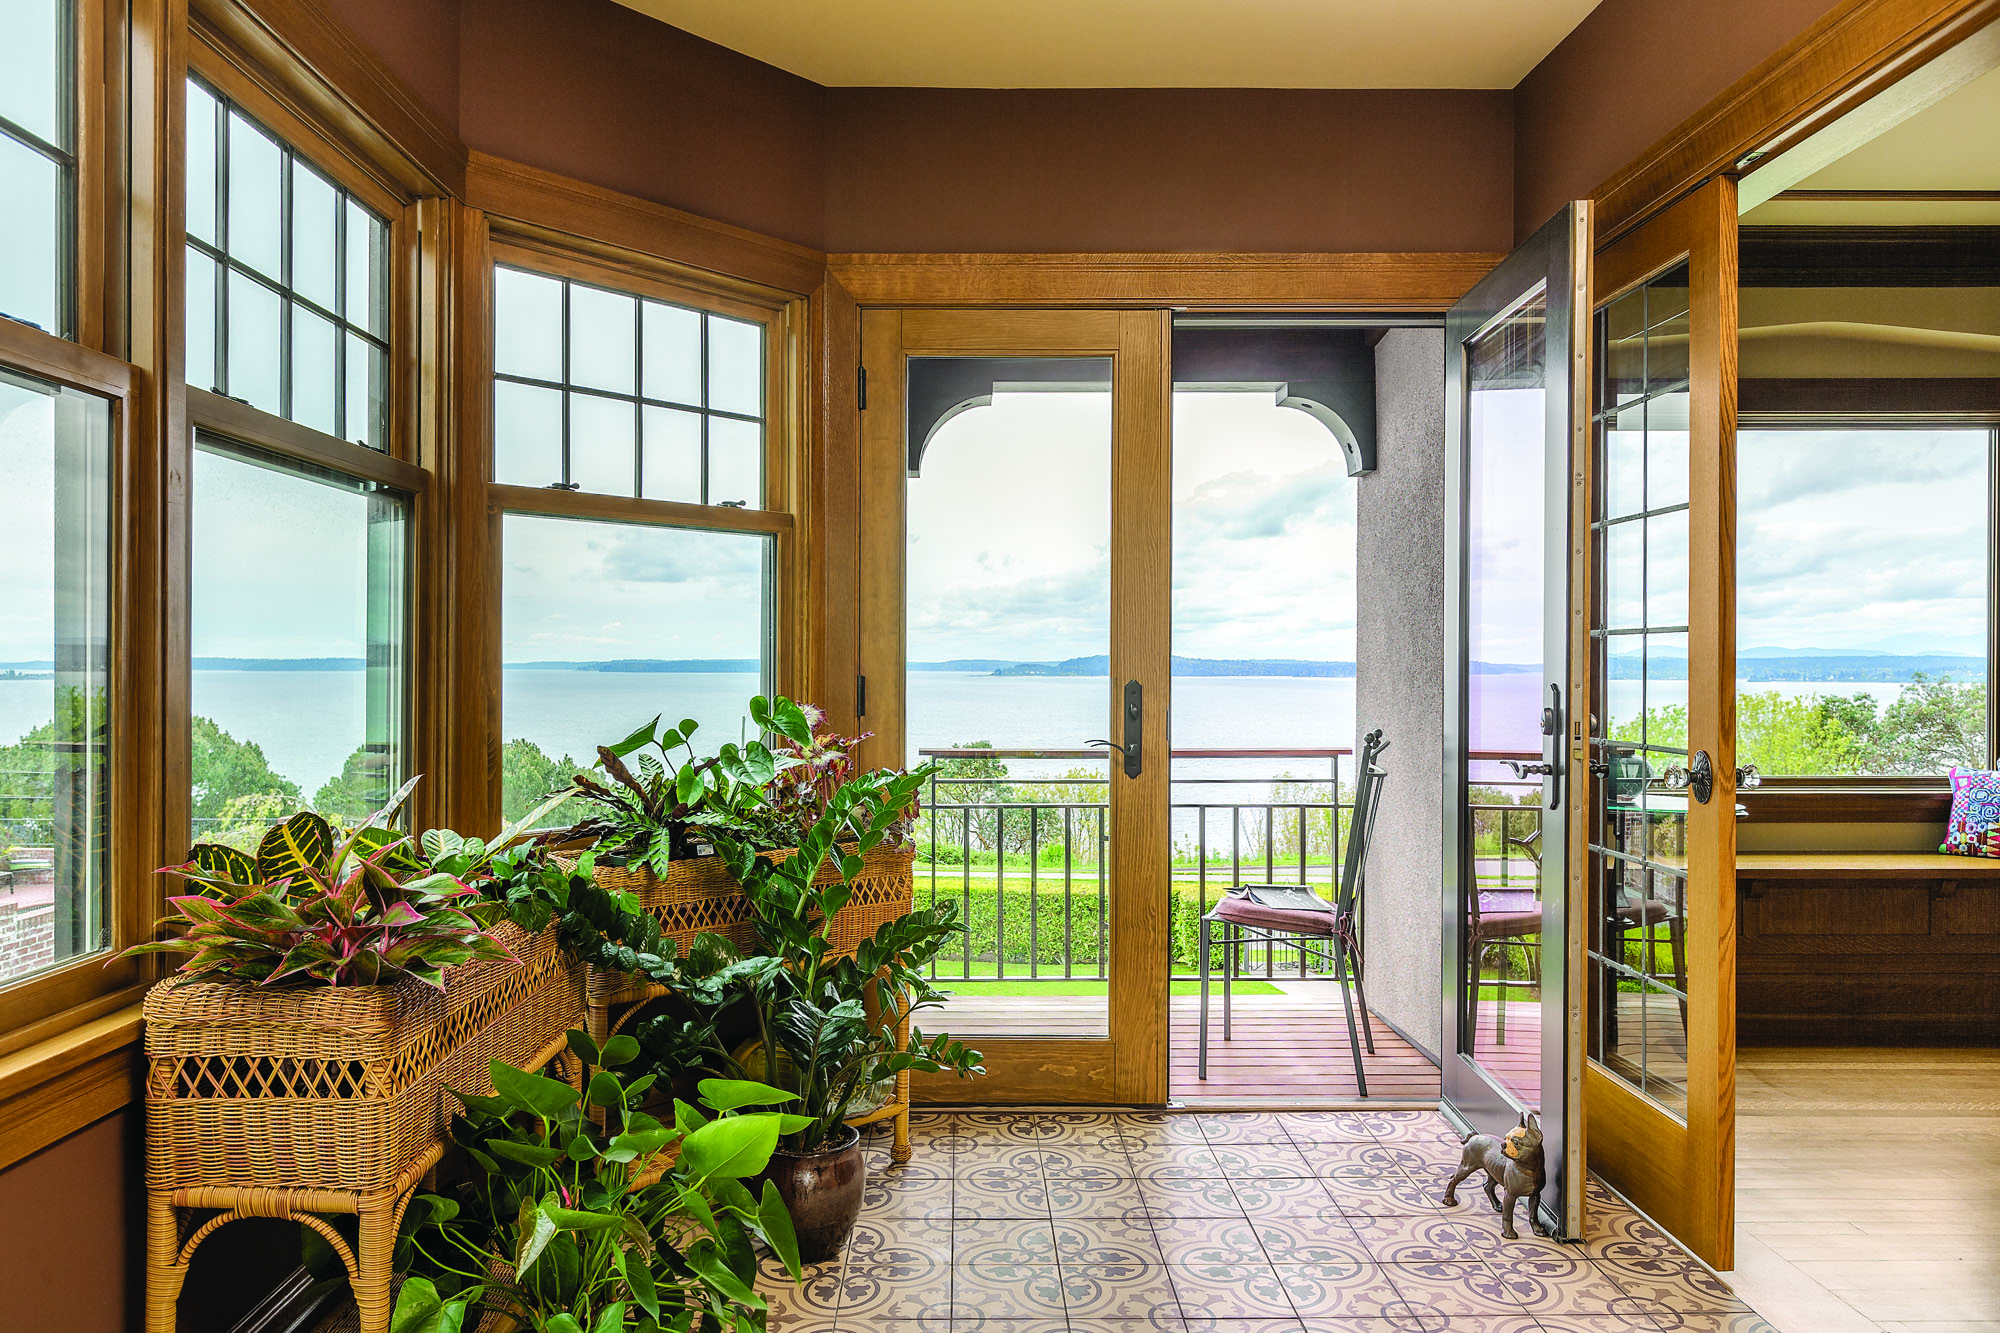 The sunroom faces southeast with windows on three sides, taking full advantage of the view. Floor is concrete tile.